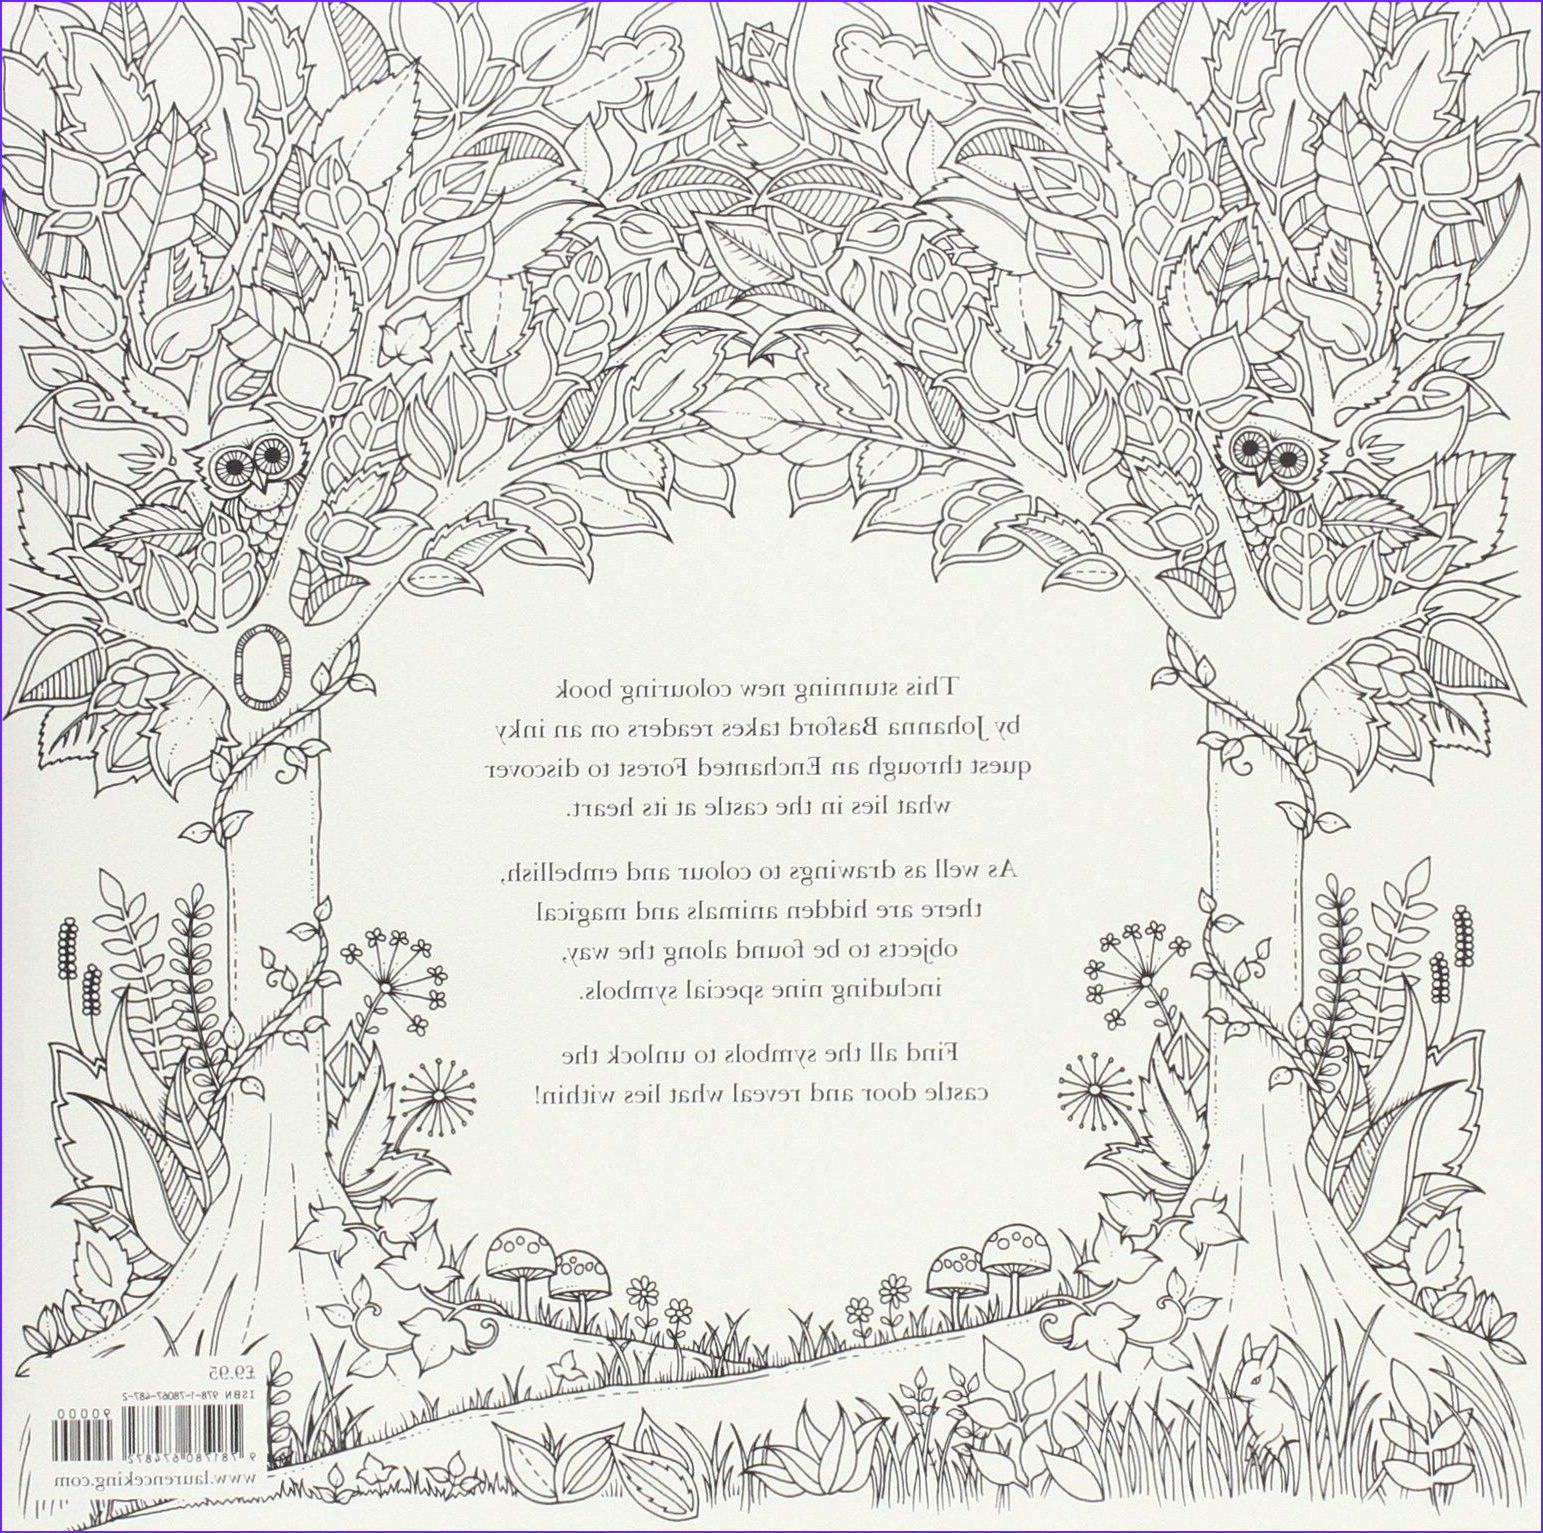 Coloring Book By Johanna Basford Luxury Photography Enchanted Forest Colouring Book By Johanna Basford